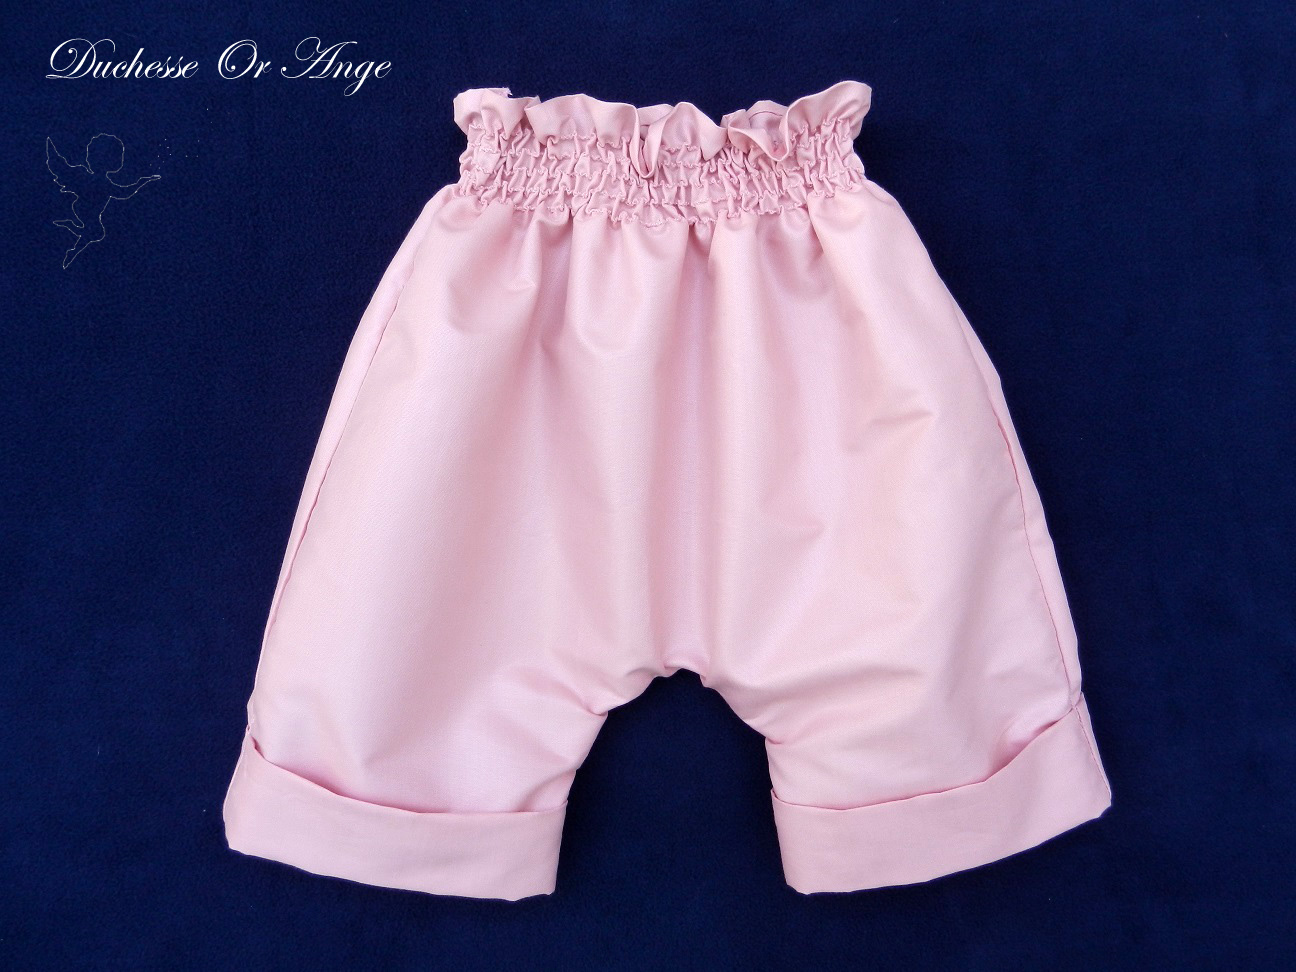 Doa 113 a pantalon court rose 6 mois pink short trousers 6 months old